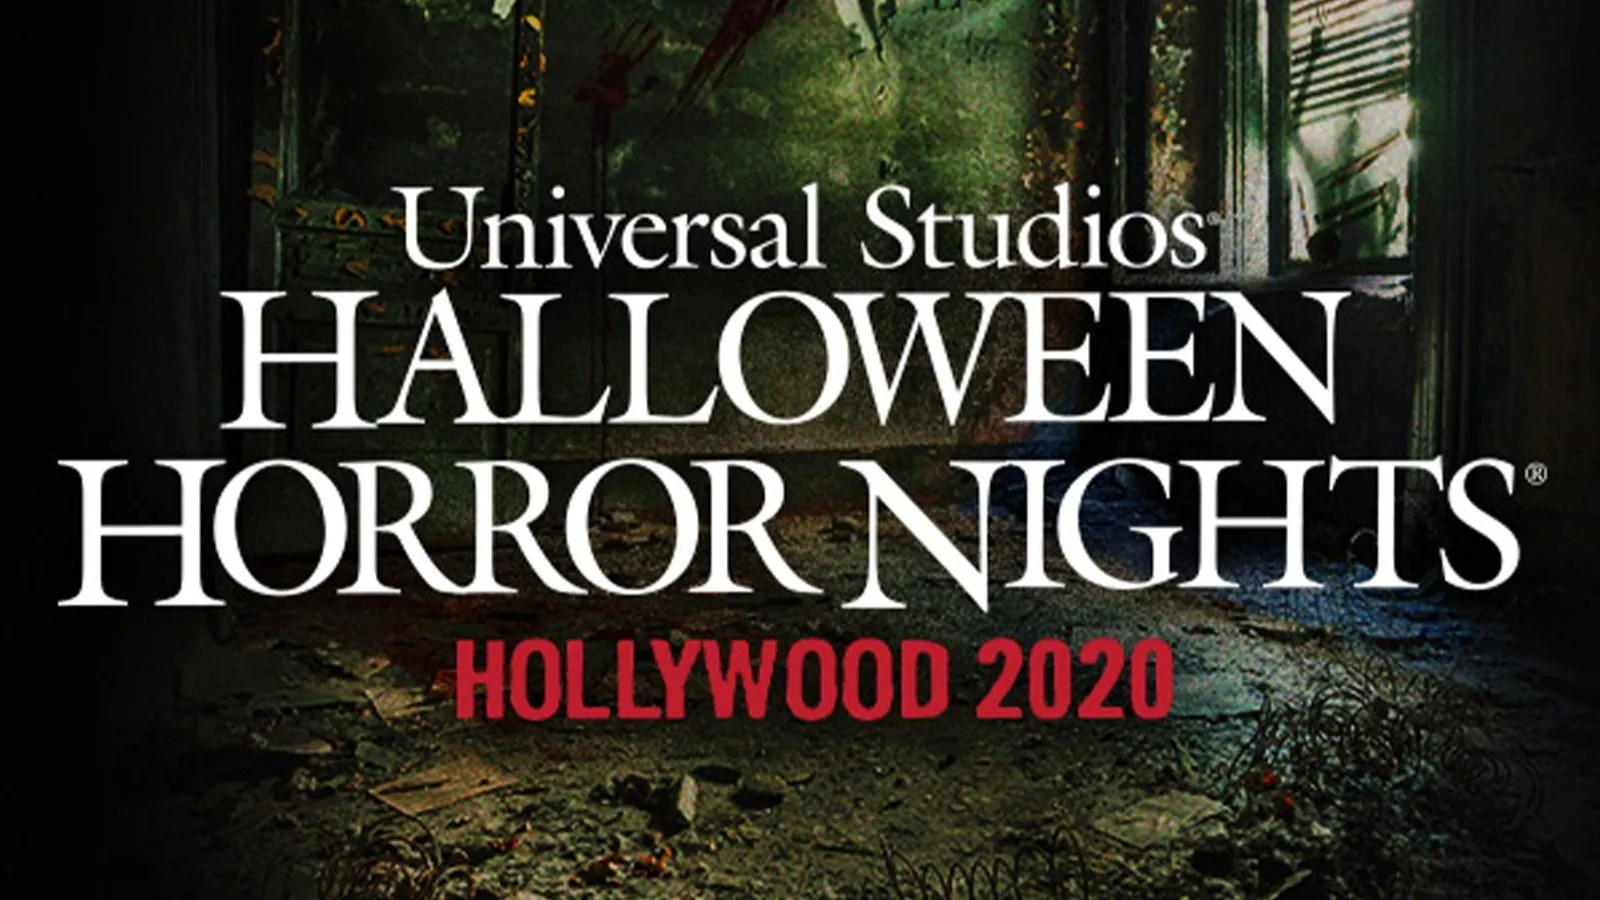 Halloween Horror Nights canceled at Universal Studios Hollywood amid coronavirus pandemic